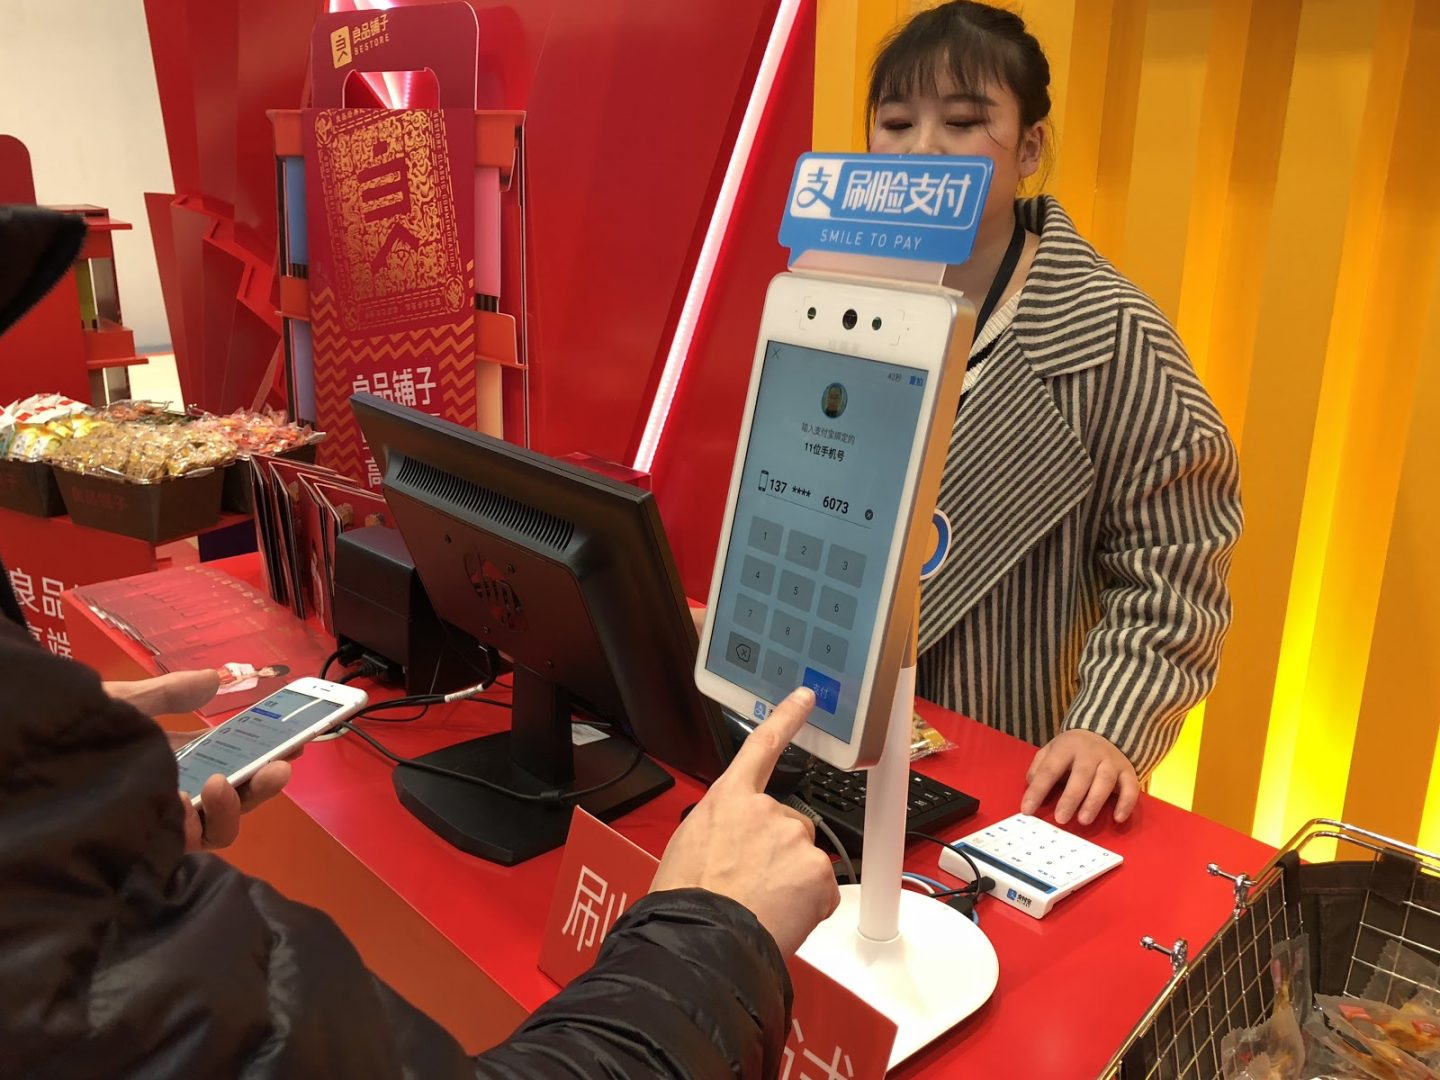 Briefing: Ant Financial to spend RMB 3 billion to promote face-scanning payment device